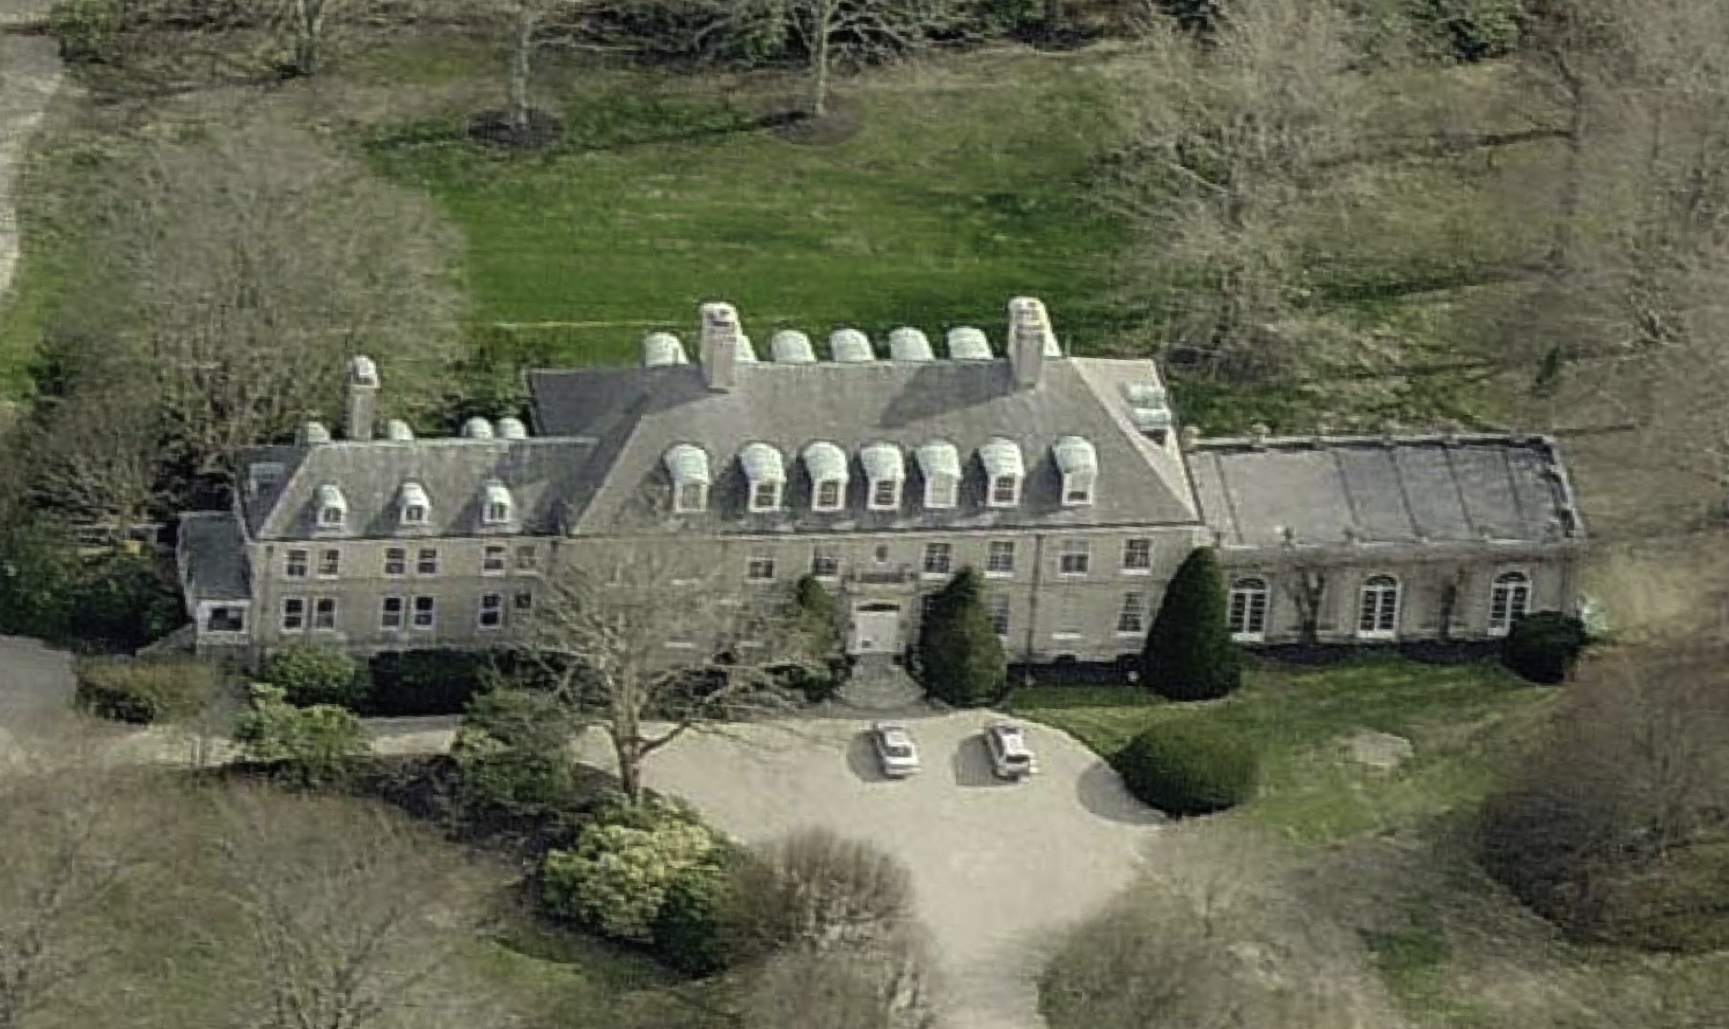 Shown: Bois Doré Estate - Restoration Newport, Rhode Island